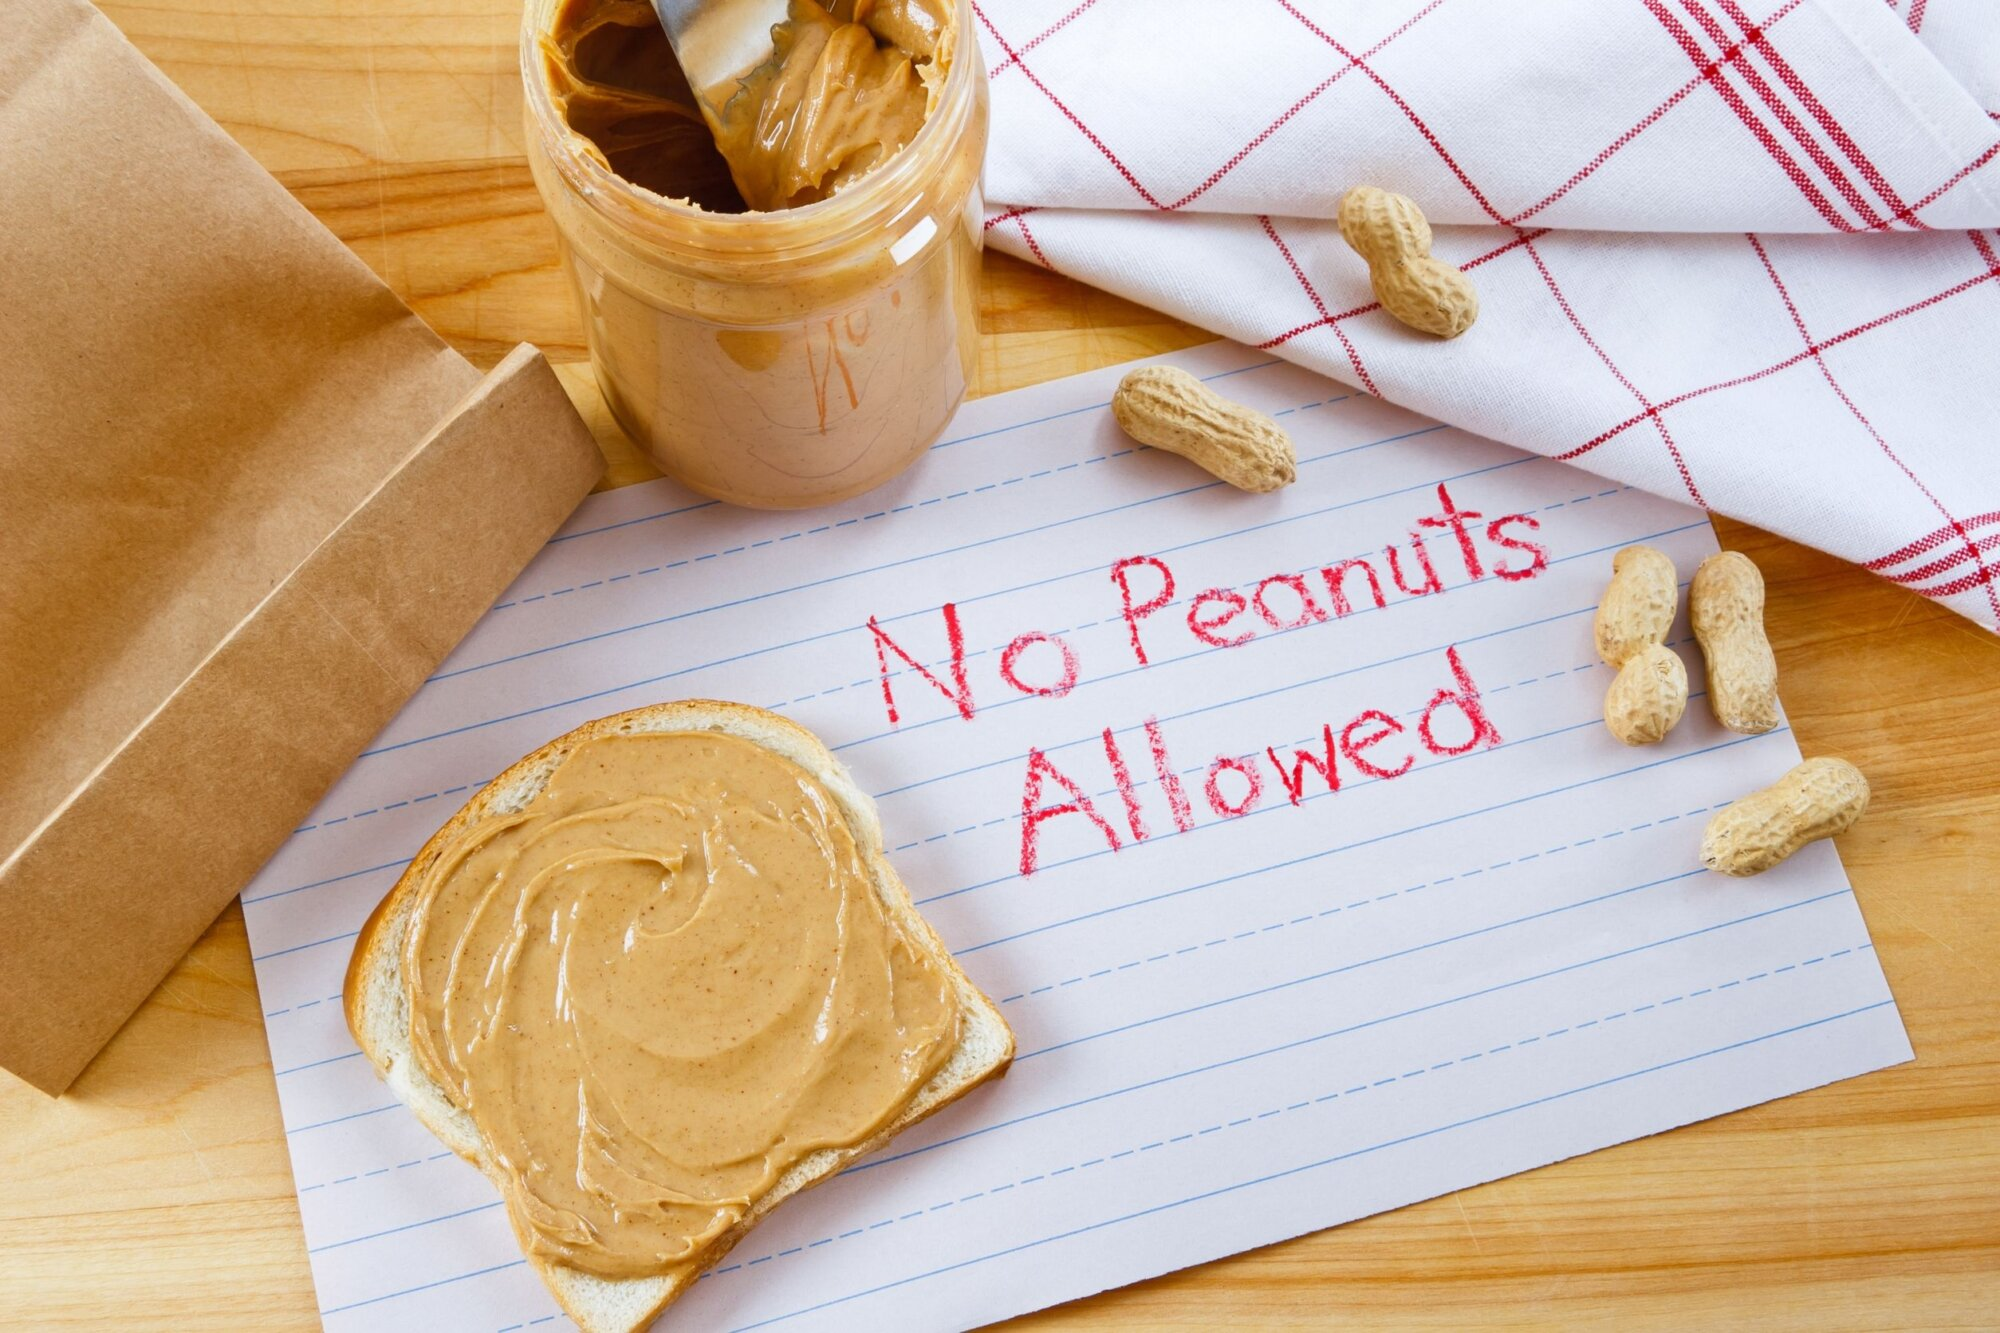 Peanut Allergies and Kids Changing the Rules